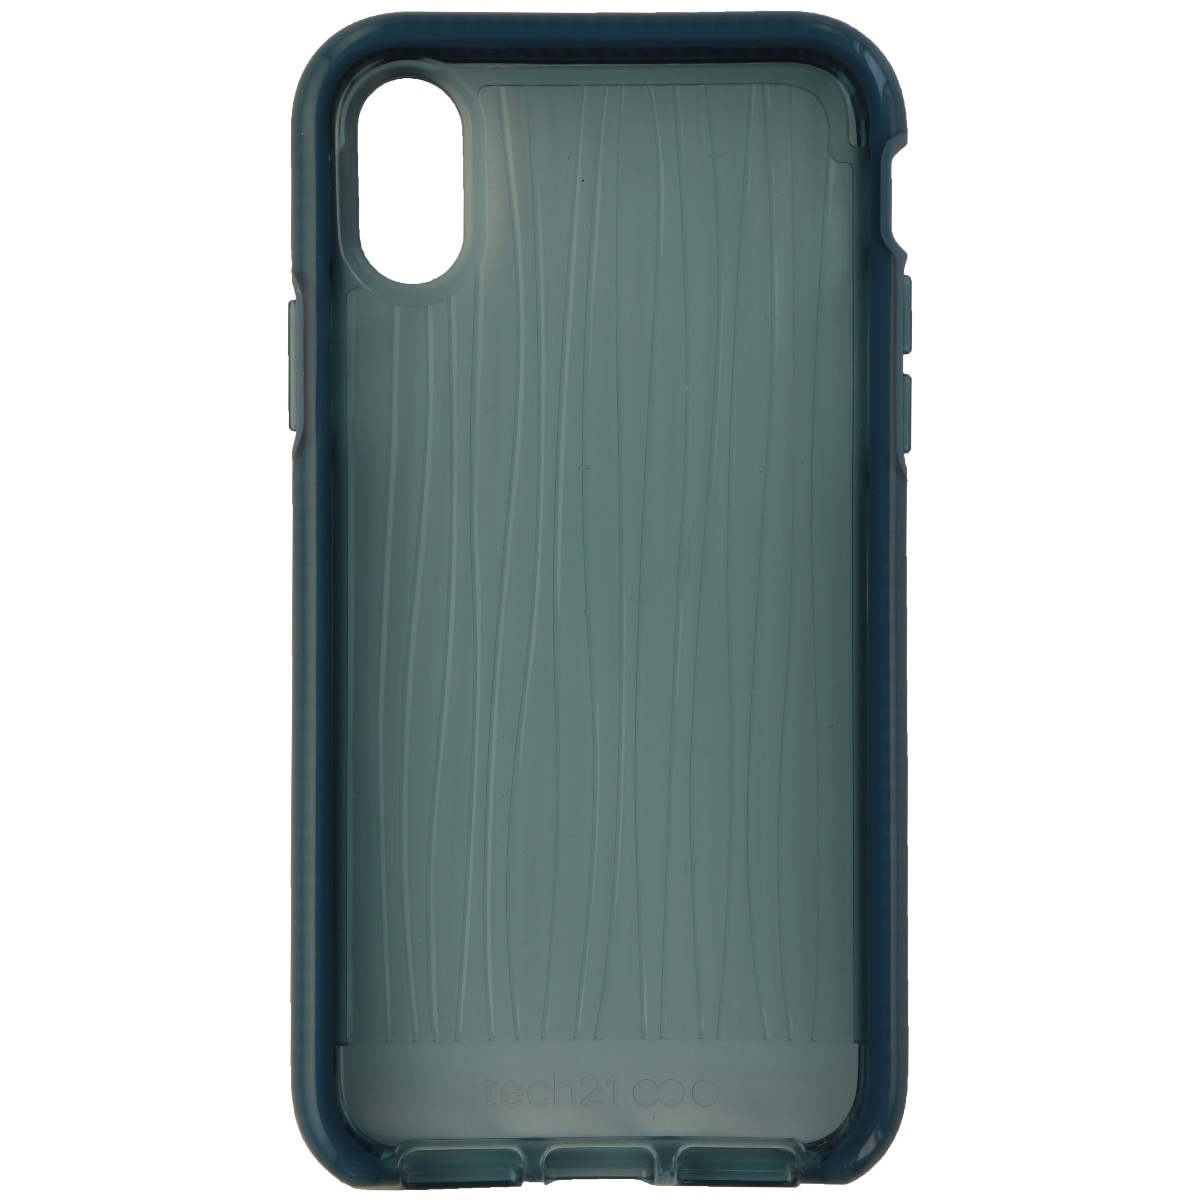 Tech21 Evo Wave Series Flexible Gel Case Cover for Apple iPhone X - Teal